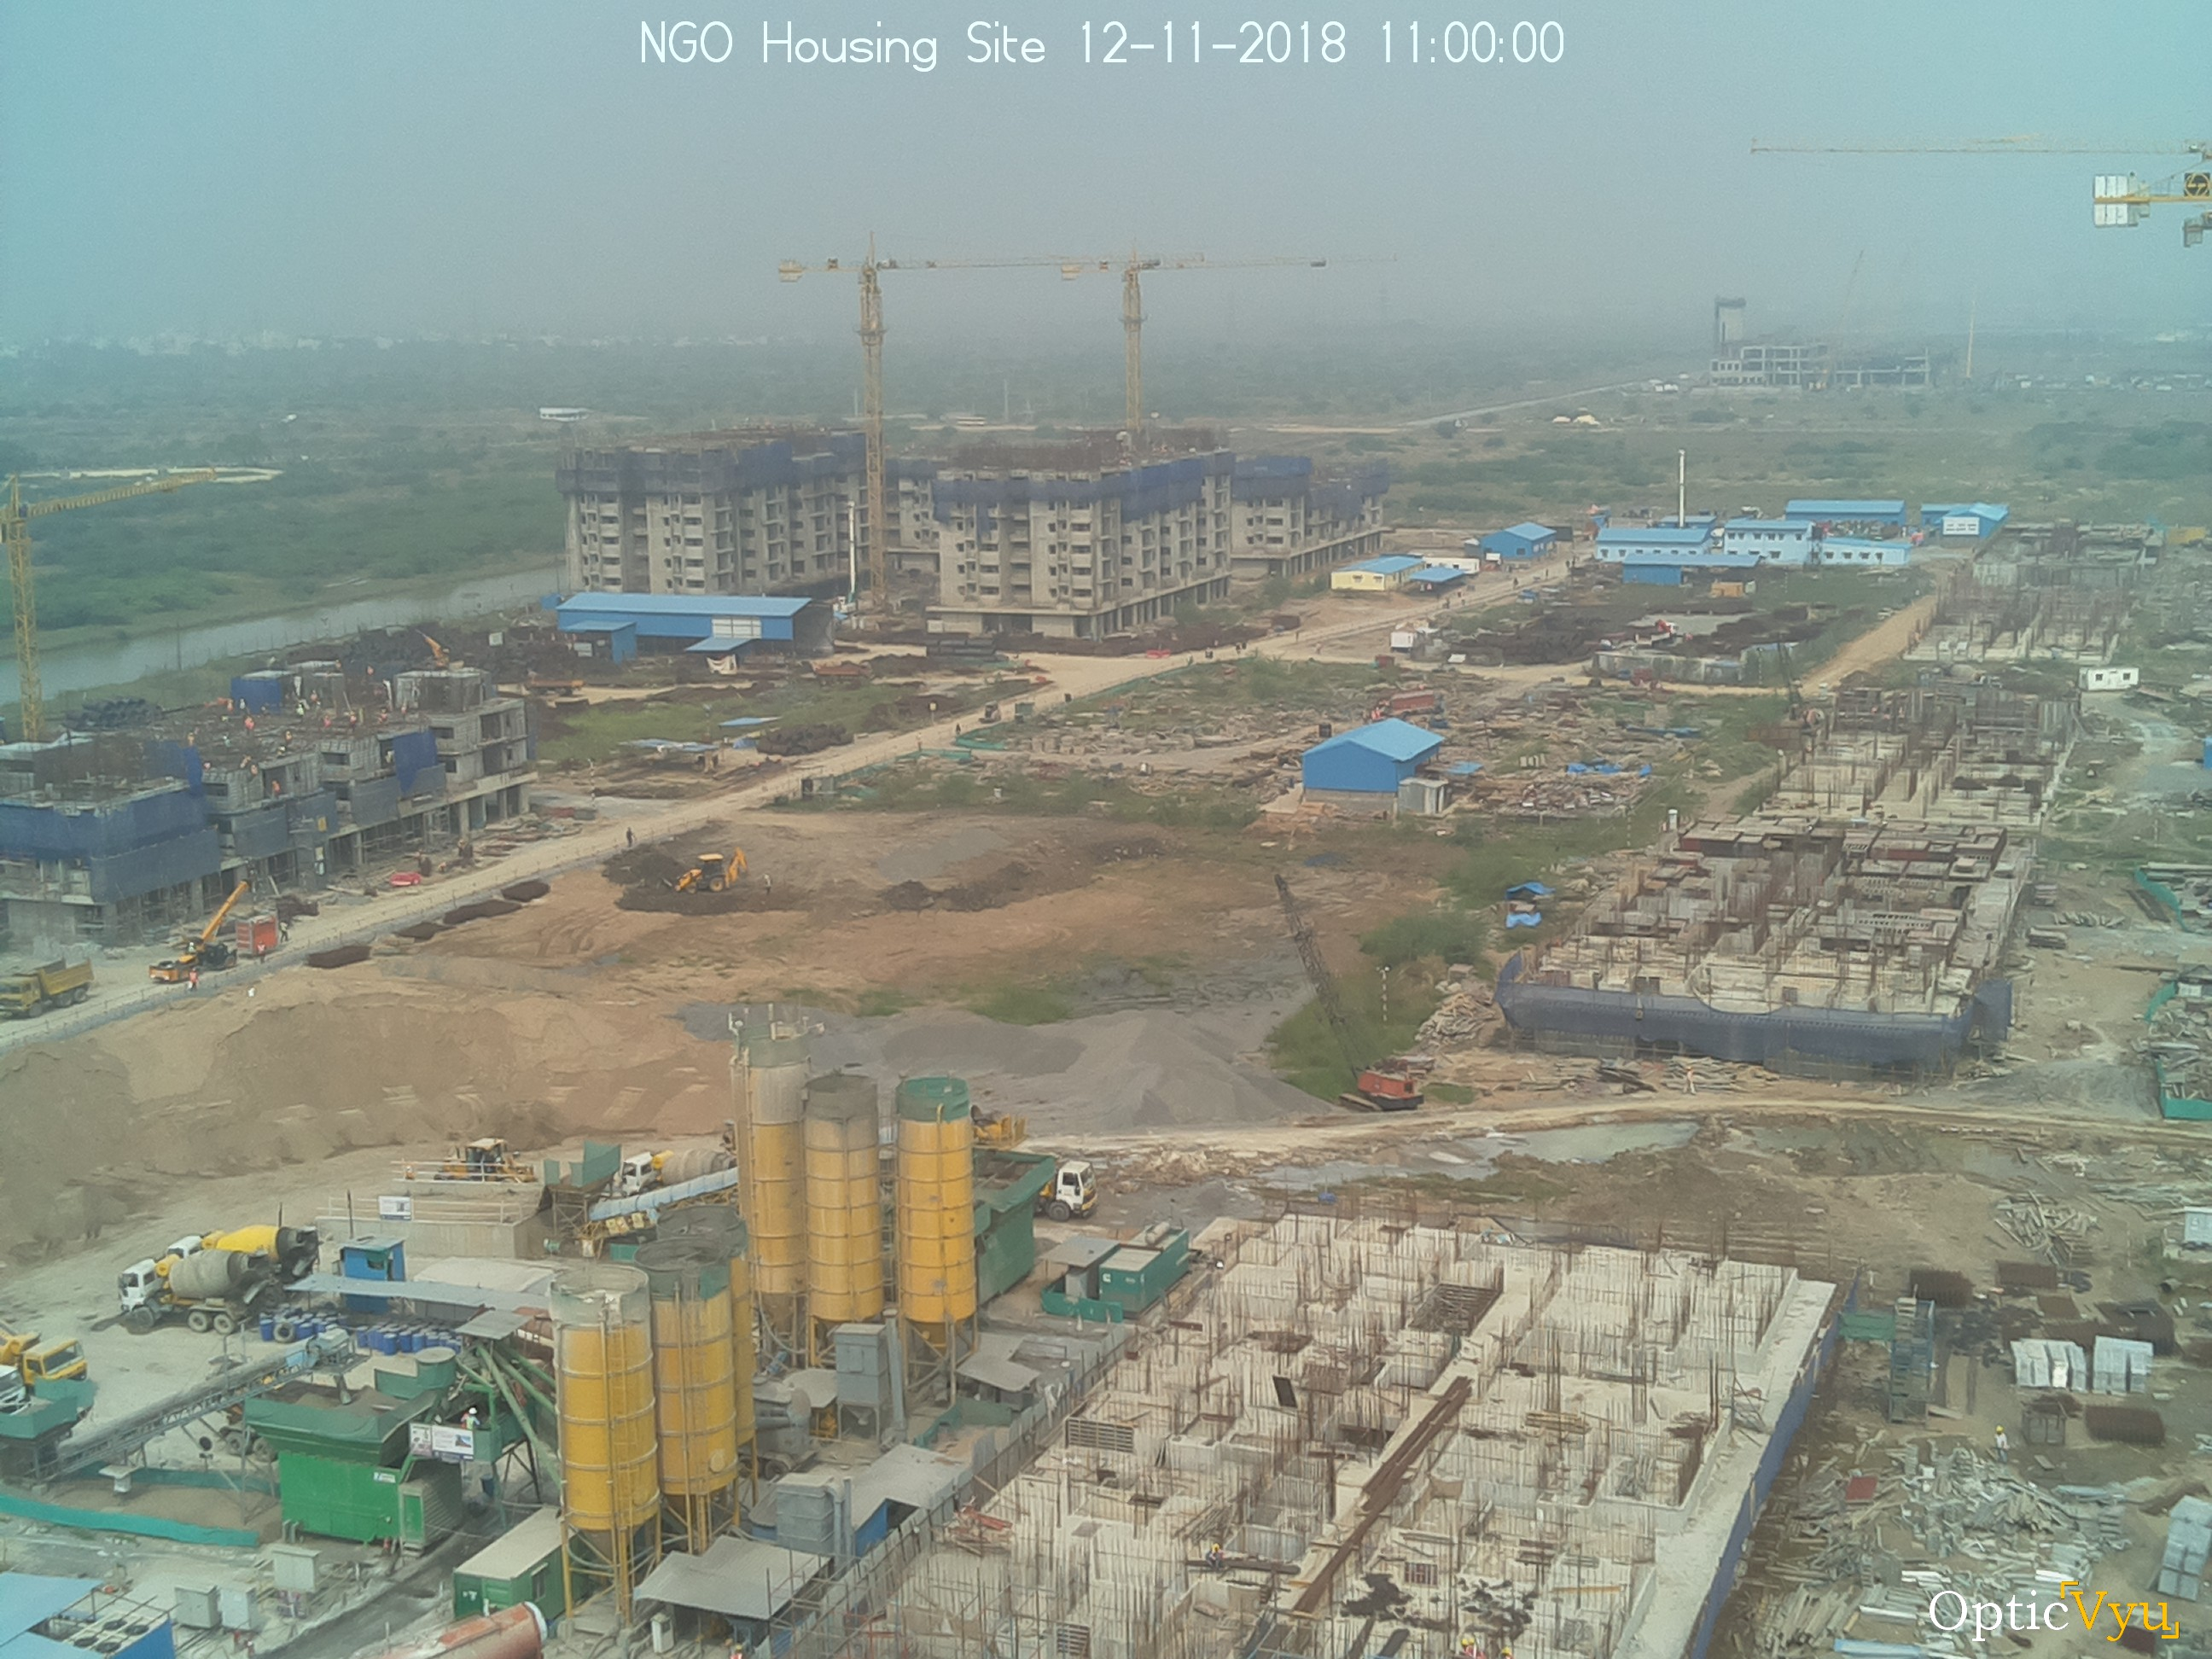 NGO housing site construction camera image